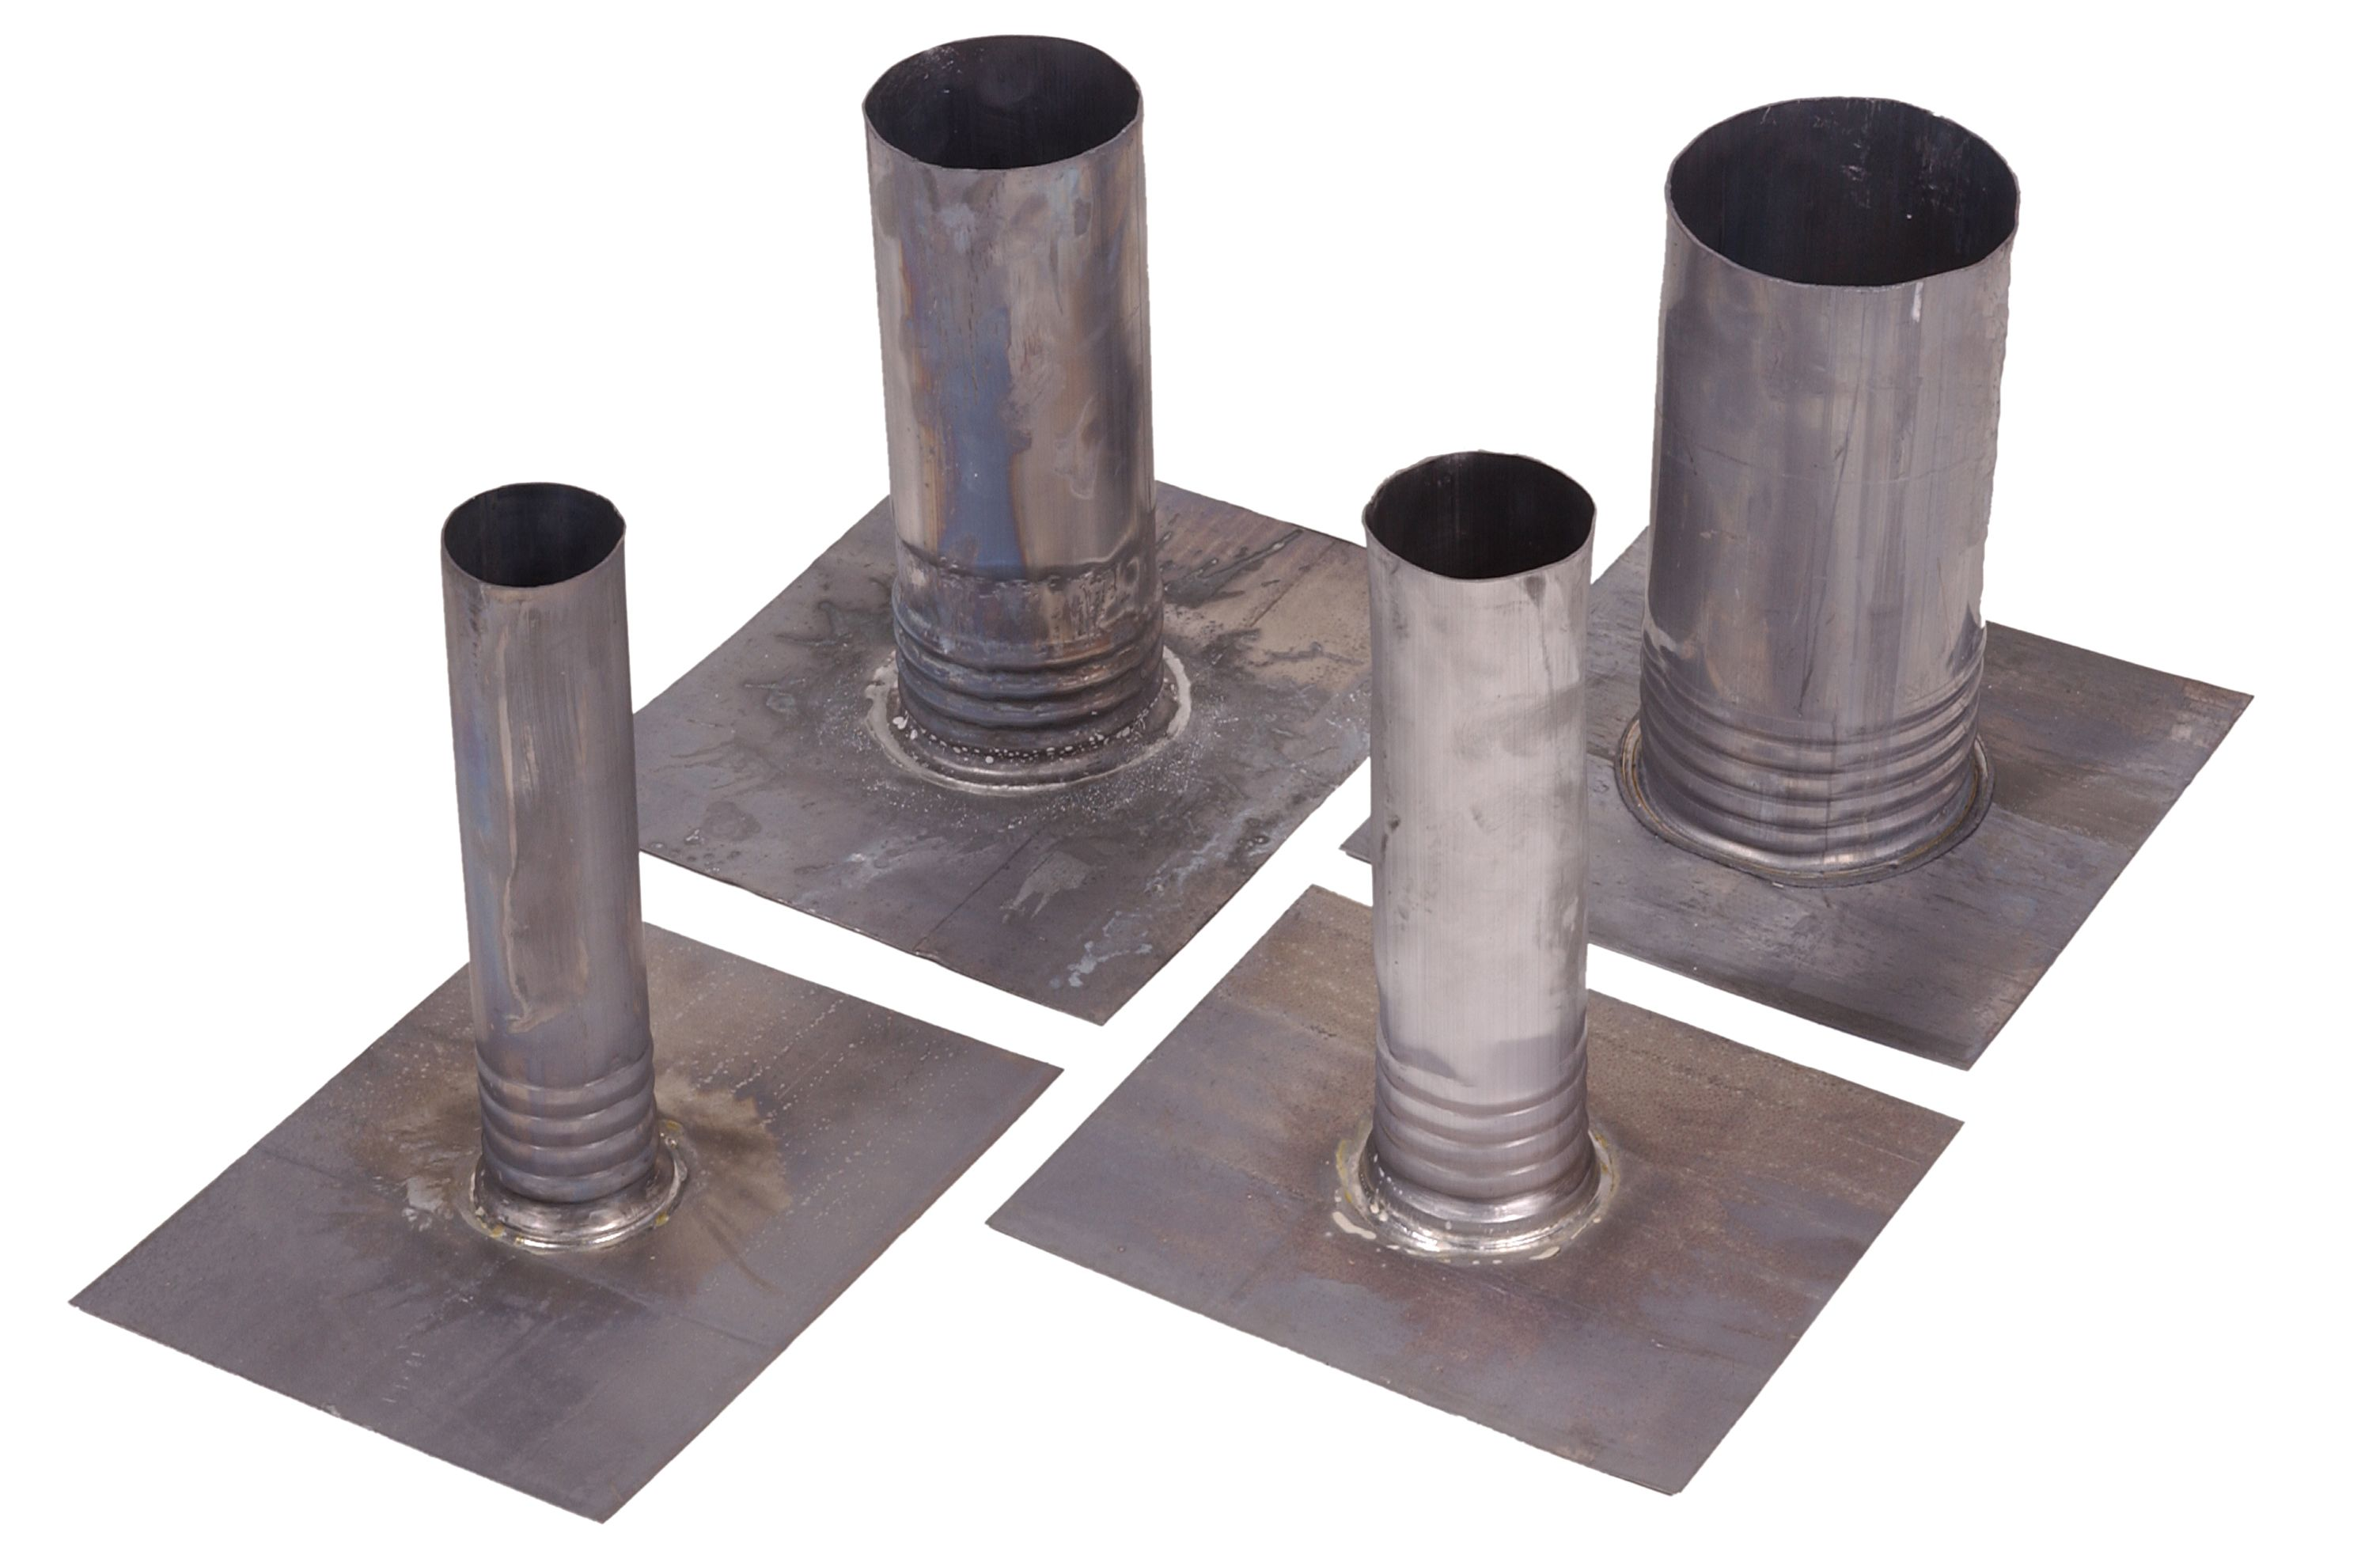 Roofing Lead Plumbing Vent Covers Plumbing Vent Roofing Vent Covers